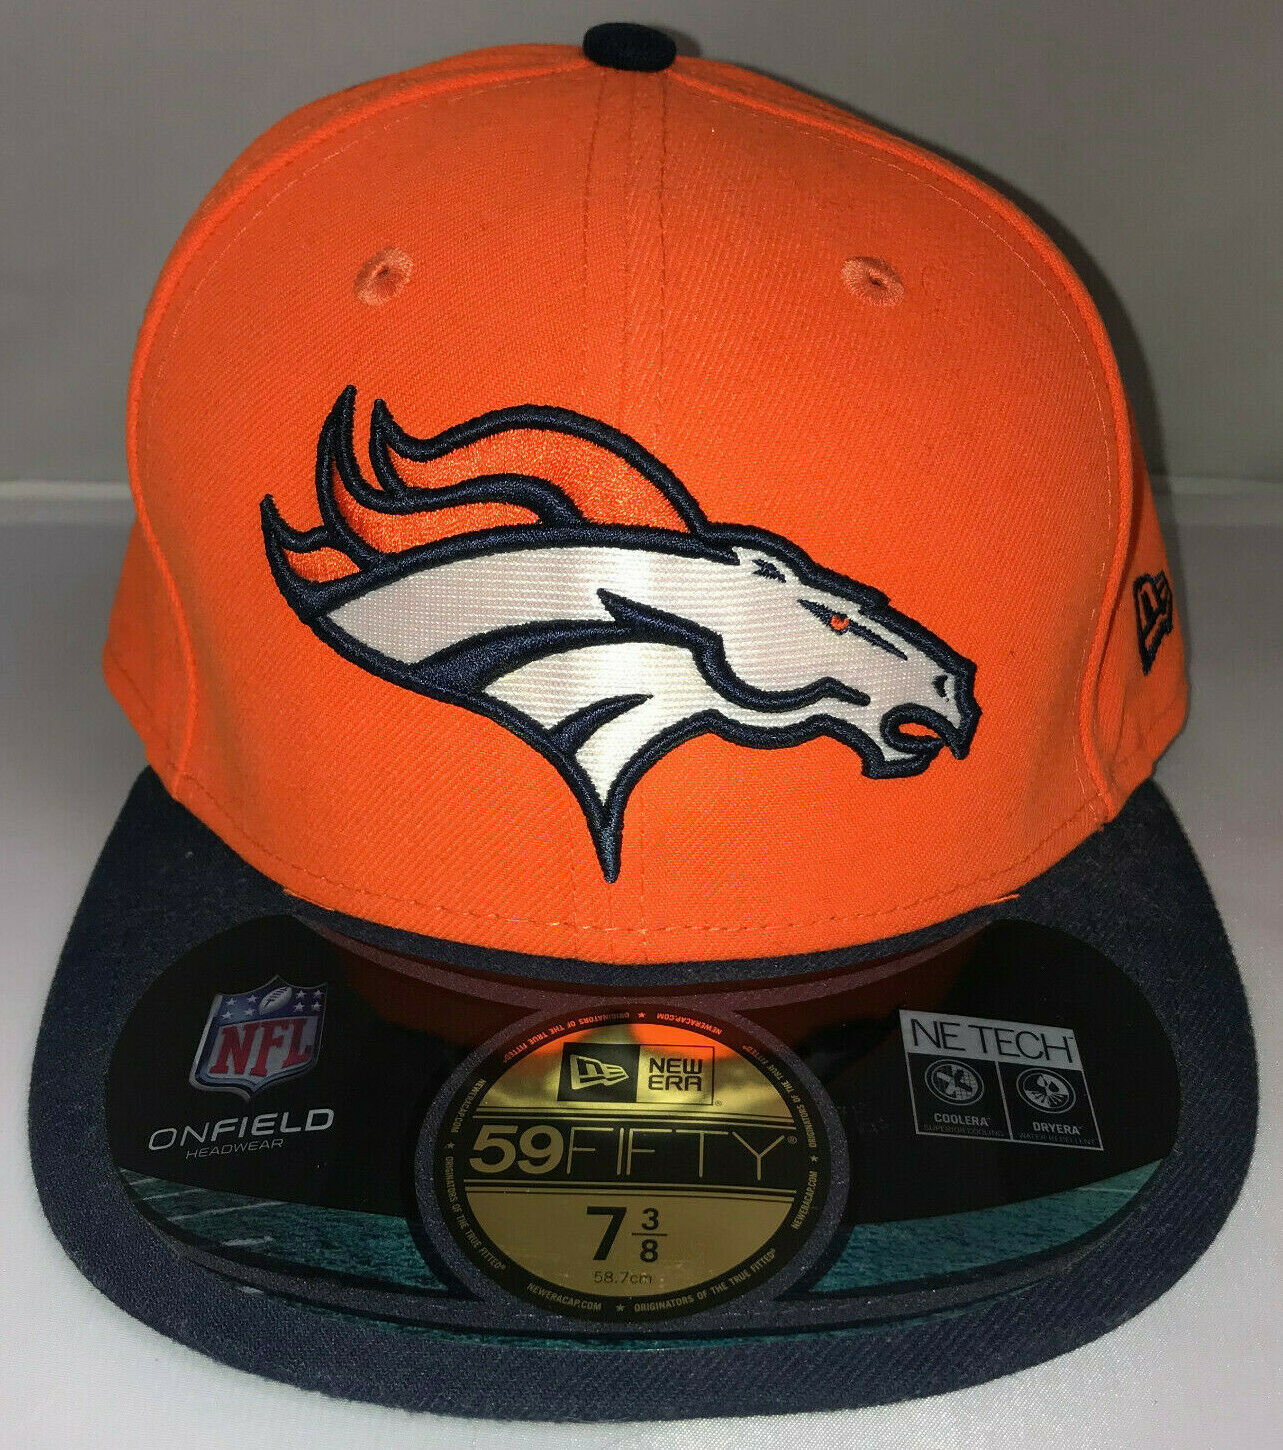 Primary image for Denver Broncos Fitted Hat Cap NFL New Era 59Fifty 7 3/8 On Field Flat Bill New